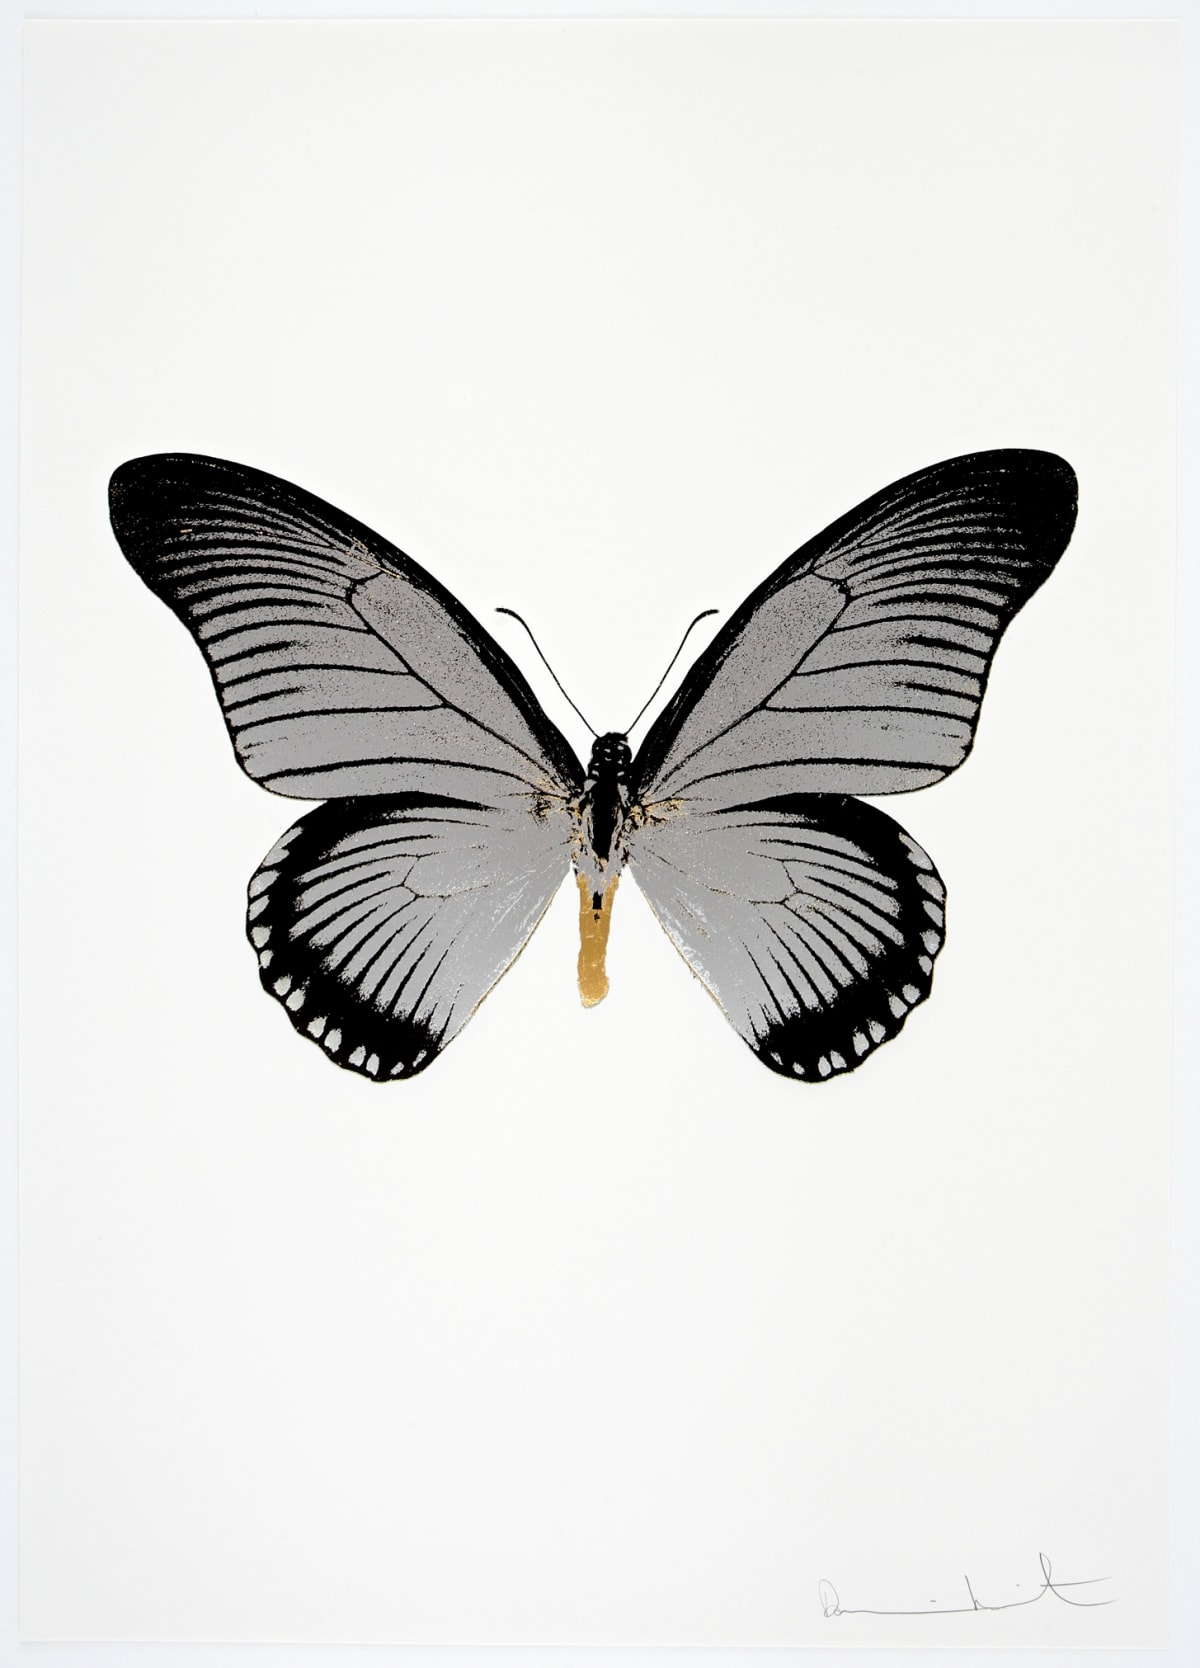 Damien Hirst The Souls IV - Silver Gloss/Raven Black/African Gold, 2010 3 colour foil block on 300gsm Arches 88 archival paper. Signed and numbered. Published by Paul Stolper and Other Criteria 72 x 51cm OC8033 / 1418-56 Edition of 15